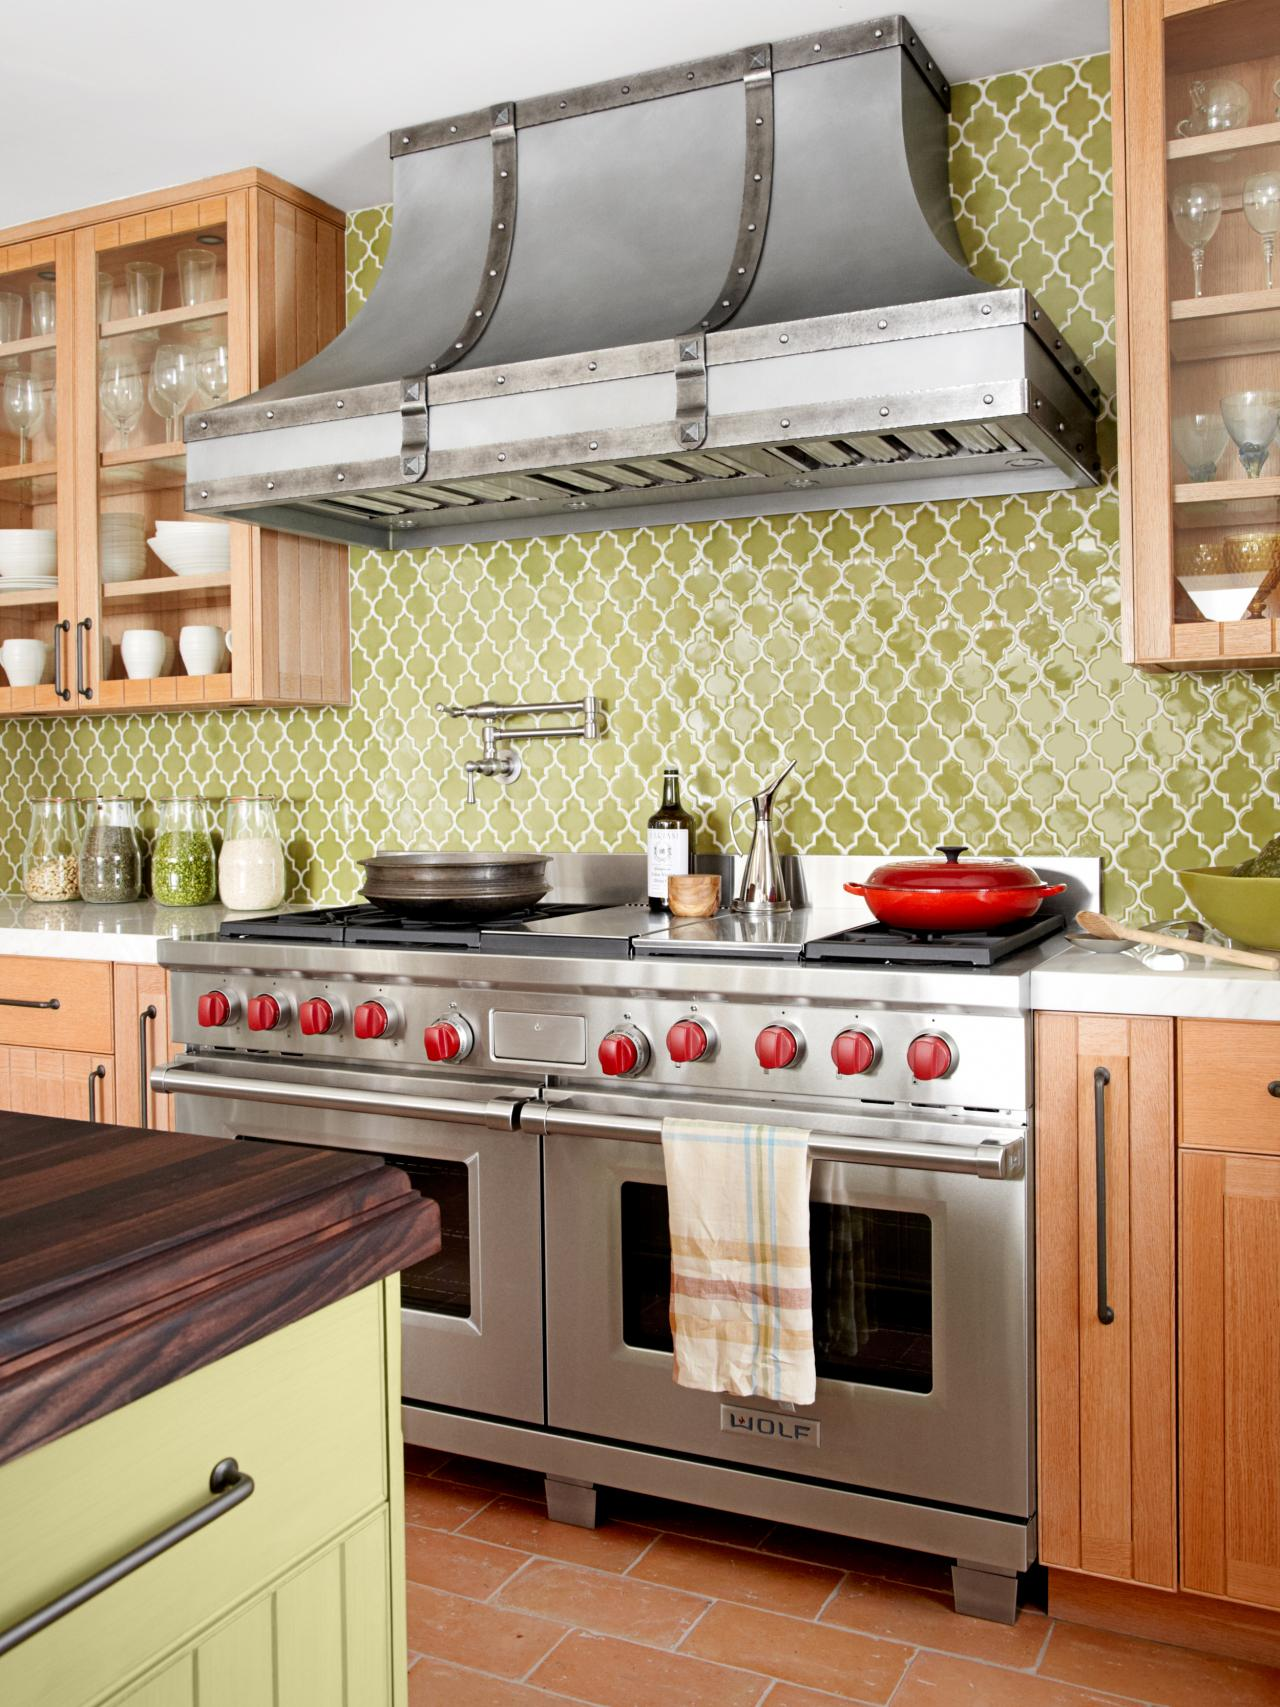 Uncategorized Backsplash For Kitchen 50 best kitchen backsplash ideas for 2017 2 dreaming of green